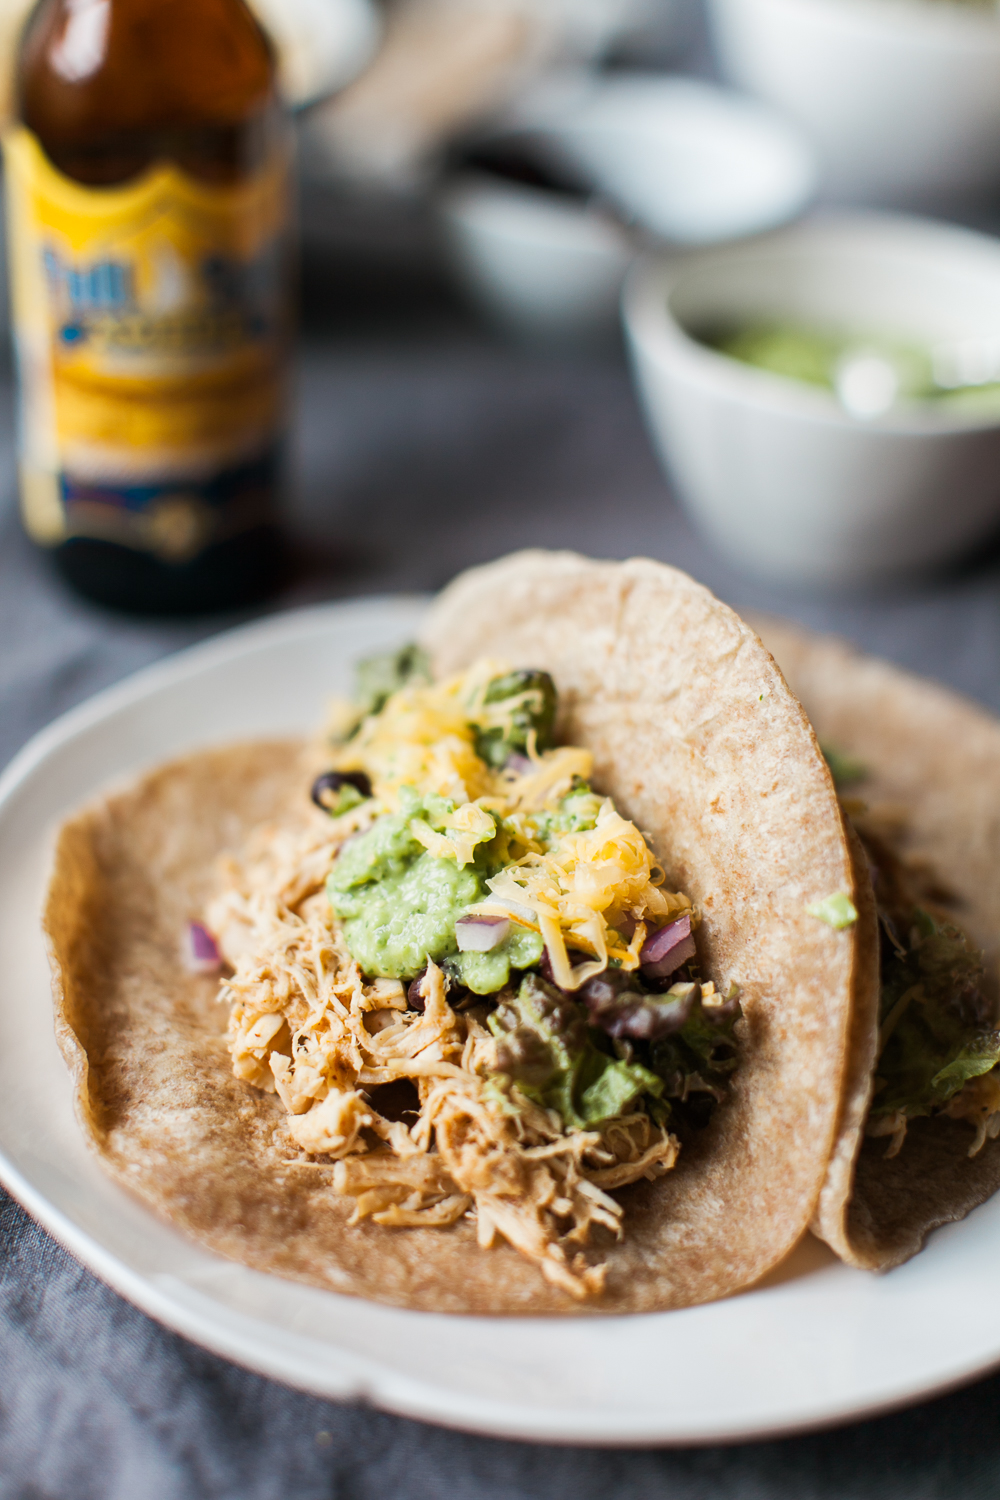 Crockpot Smoked Cheddar & Beer Shredded Chicken Tacos with Creamy Avocado Salsa | Feast & Dwell